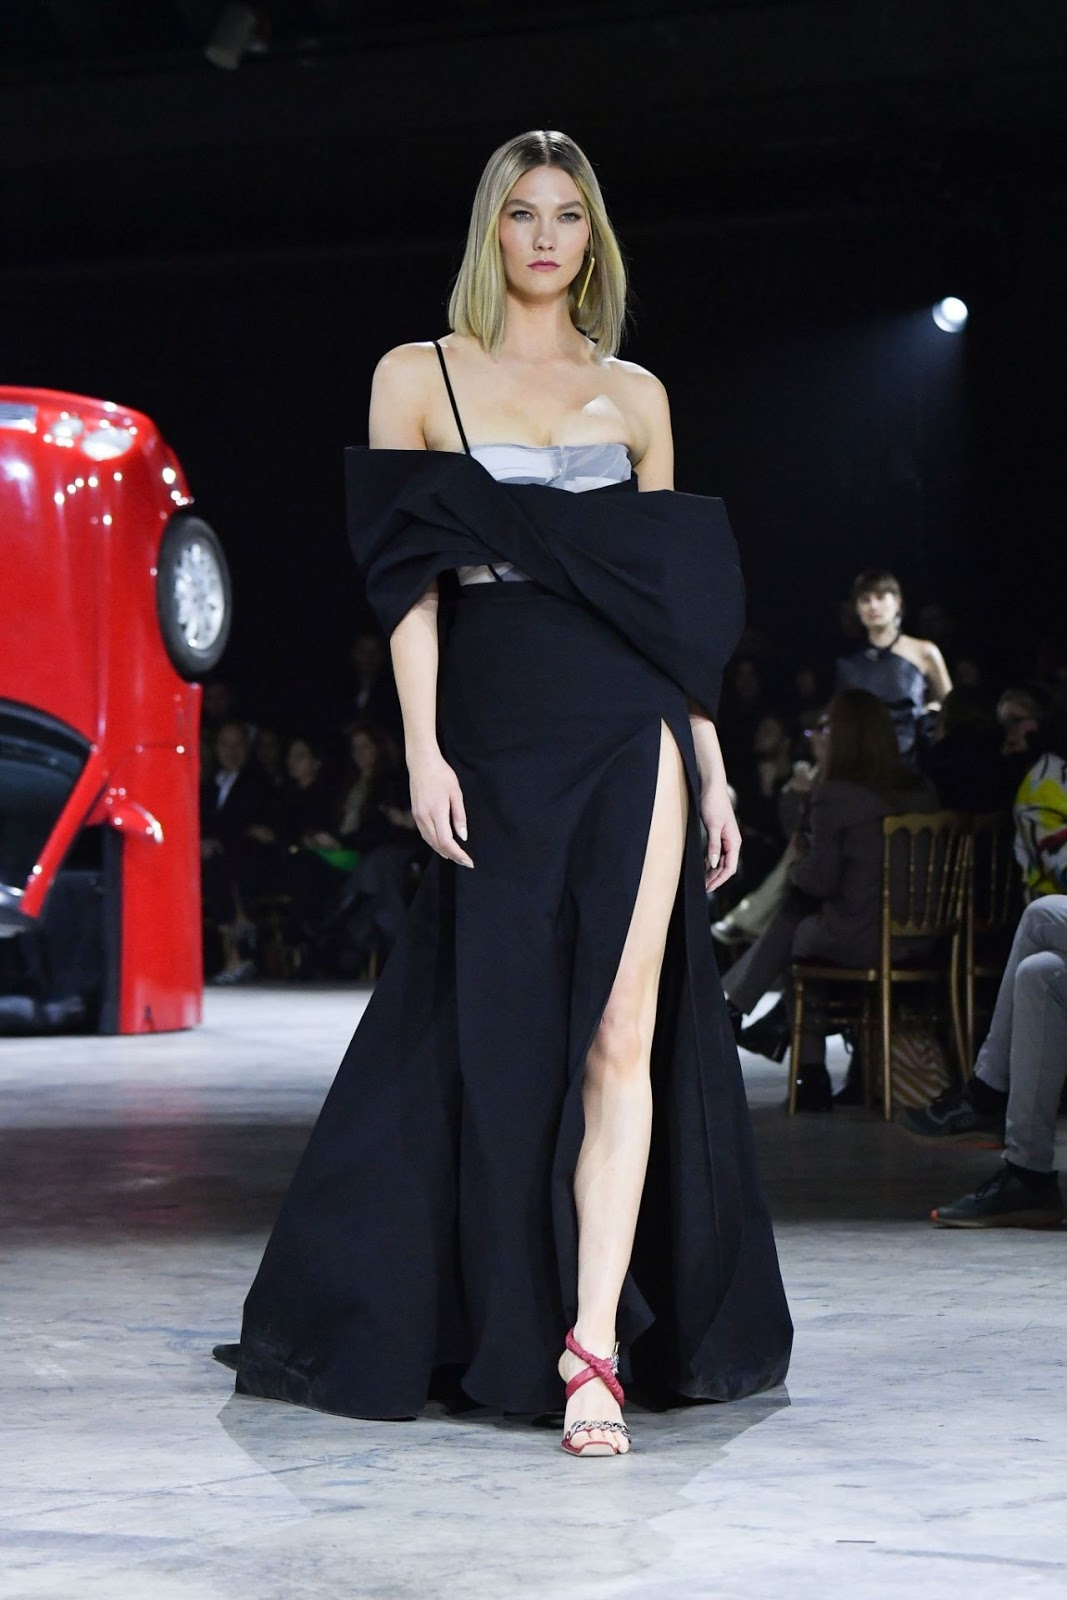 Karlie Kloss flashes her cleavage and toned legs in racy thigh-split corset gown